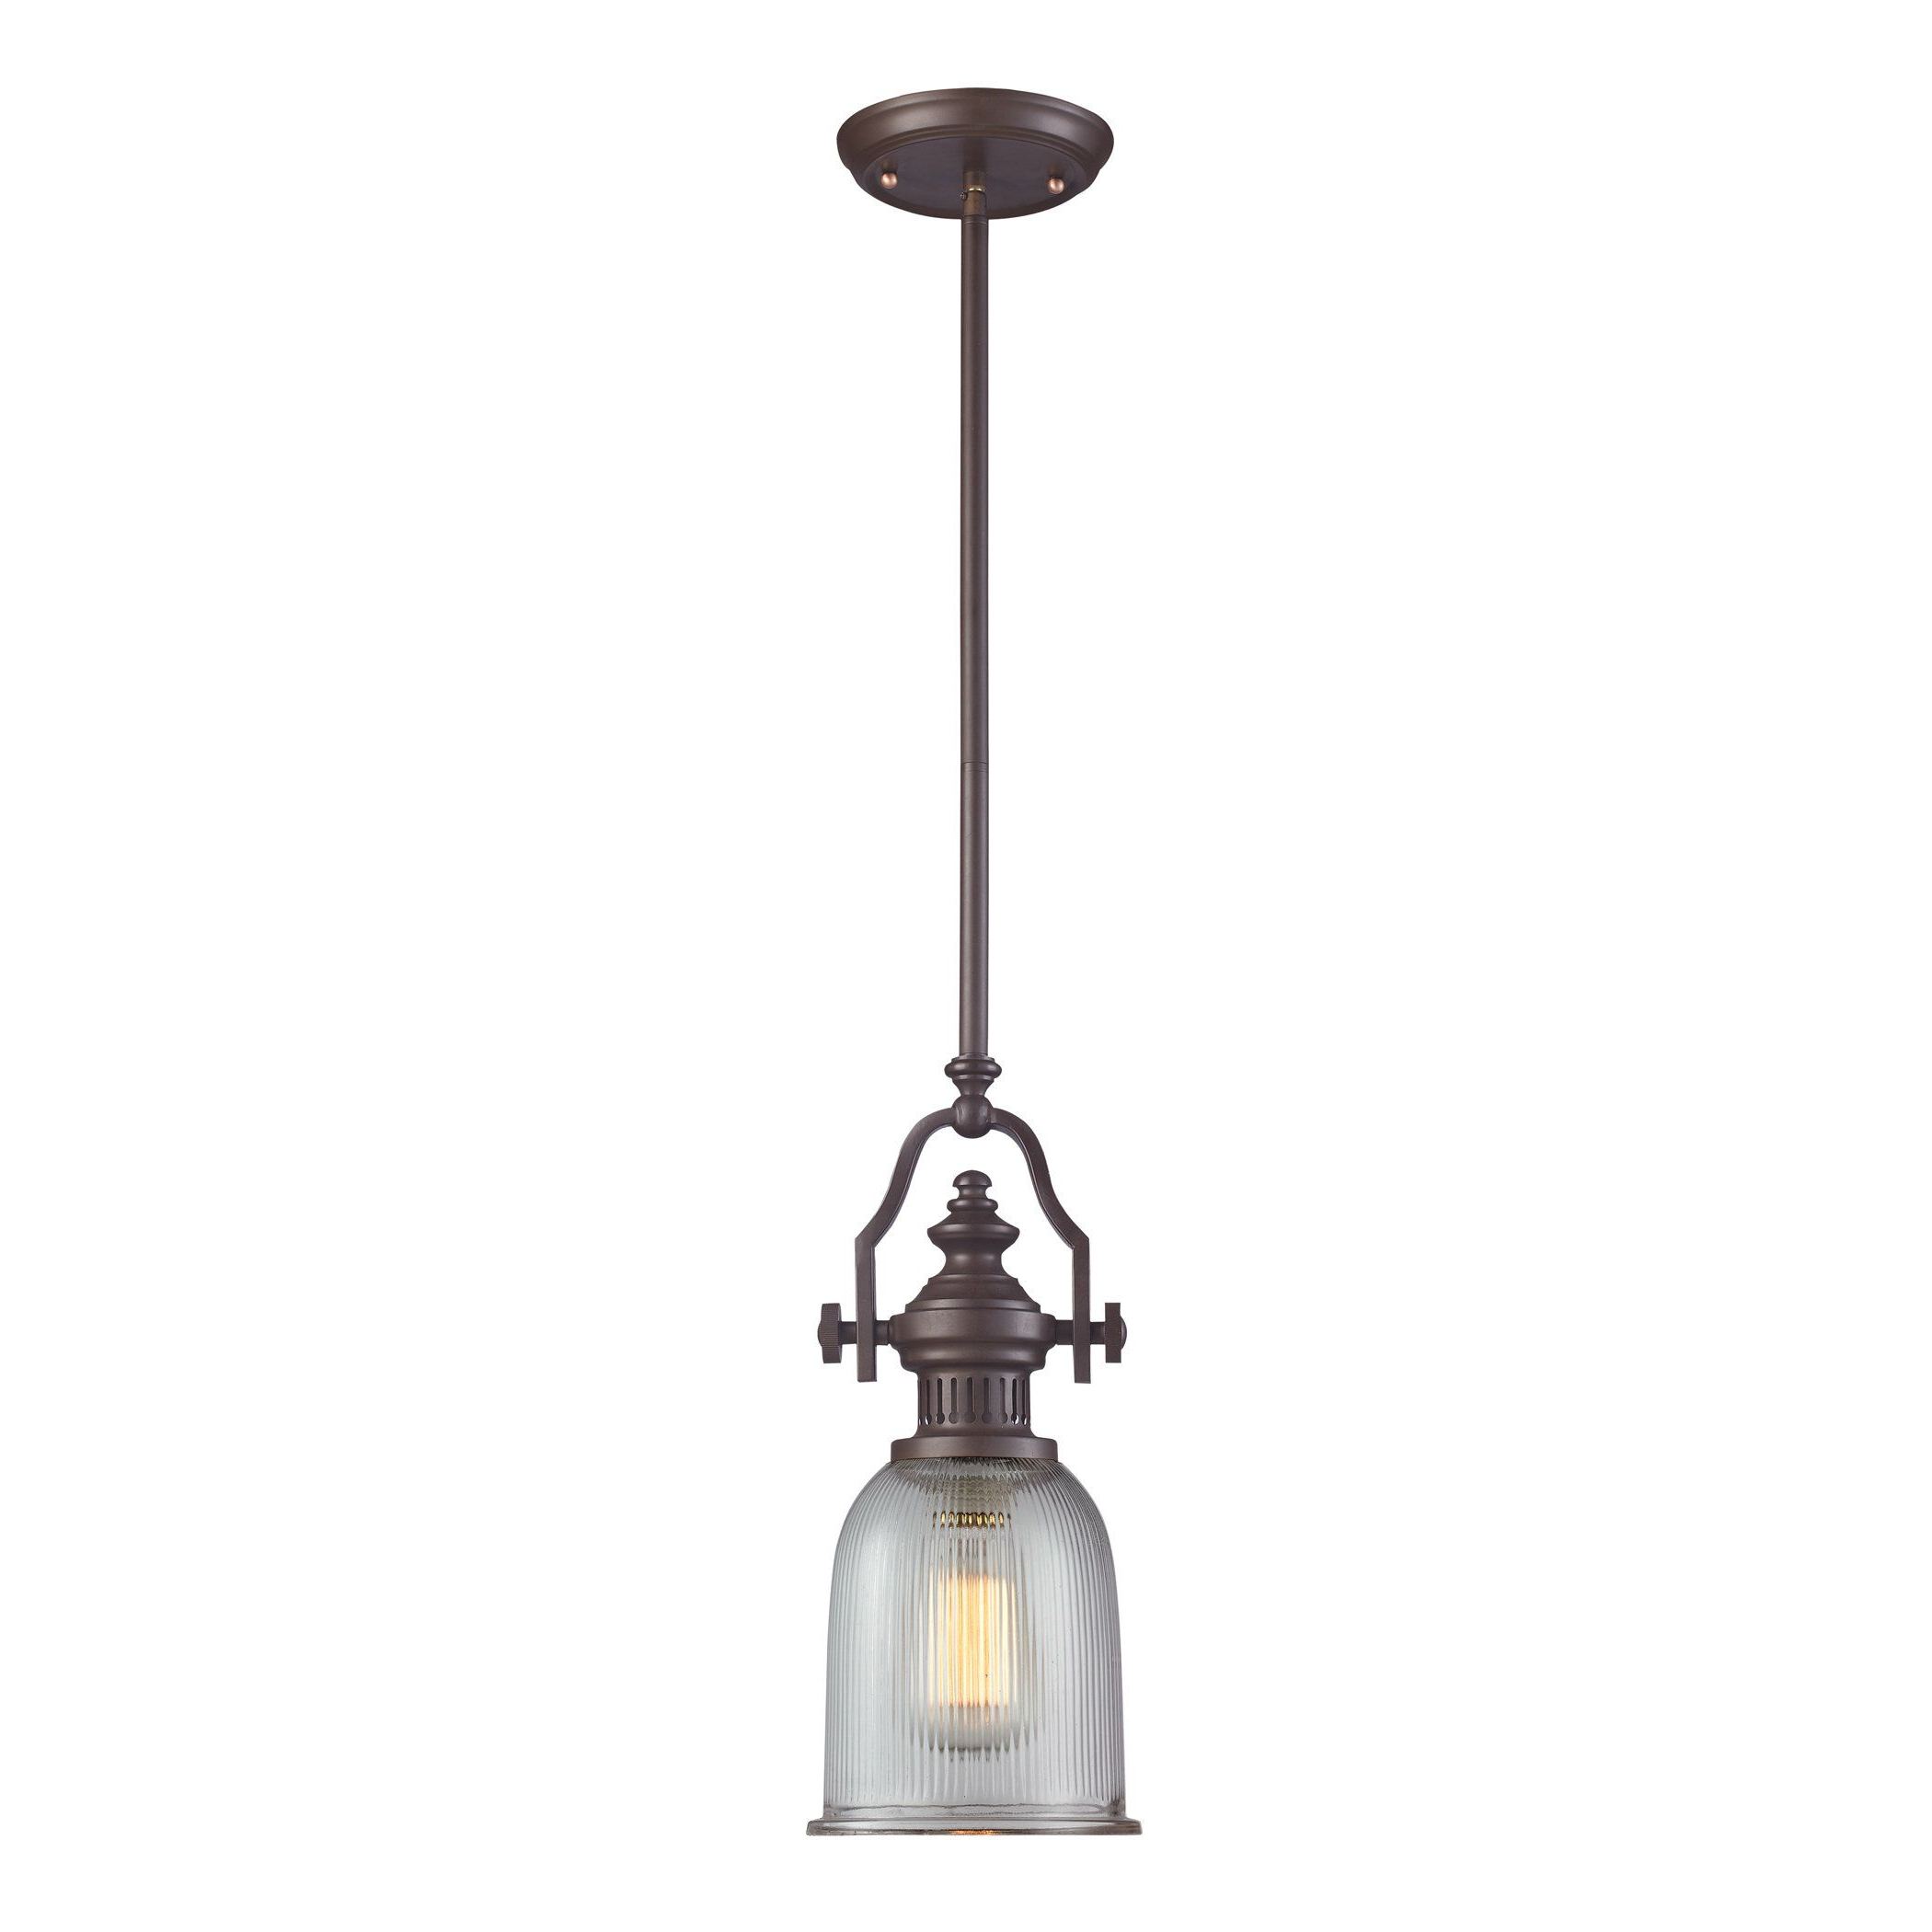 Newest Erico 1 Light Single Bell Pendants Throughout Erico 1 Light Cone Pendant (View 18 of 20)